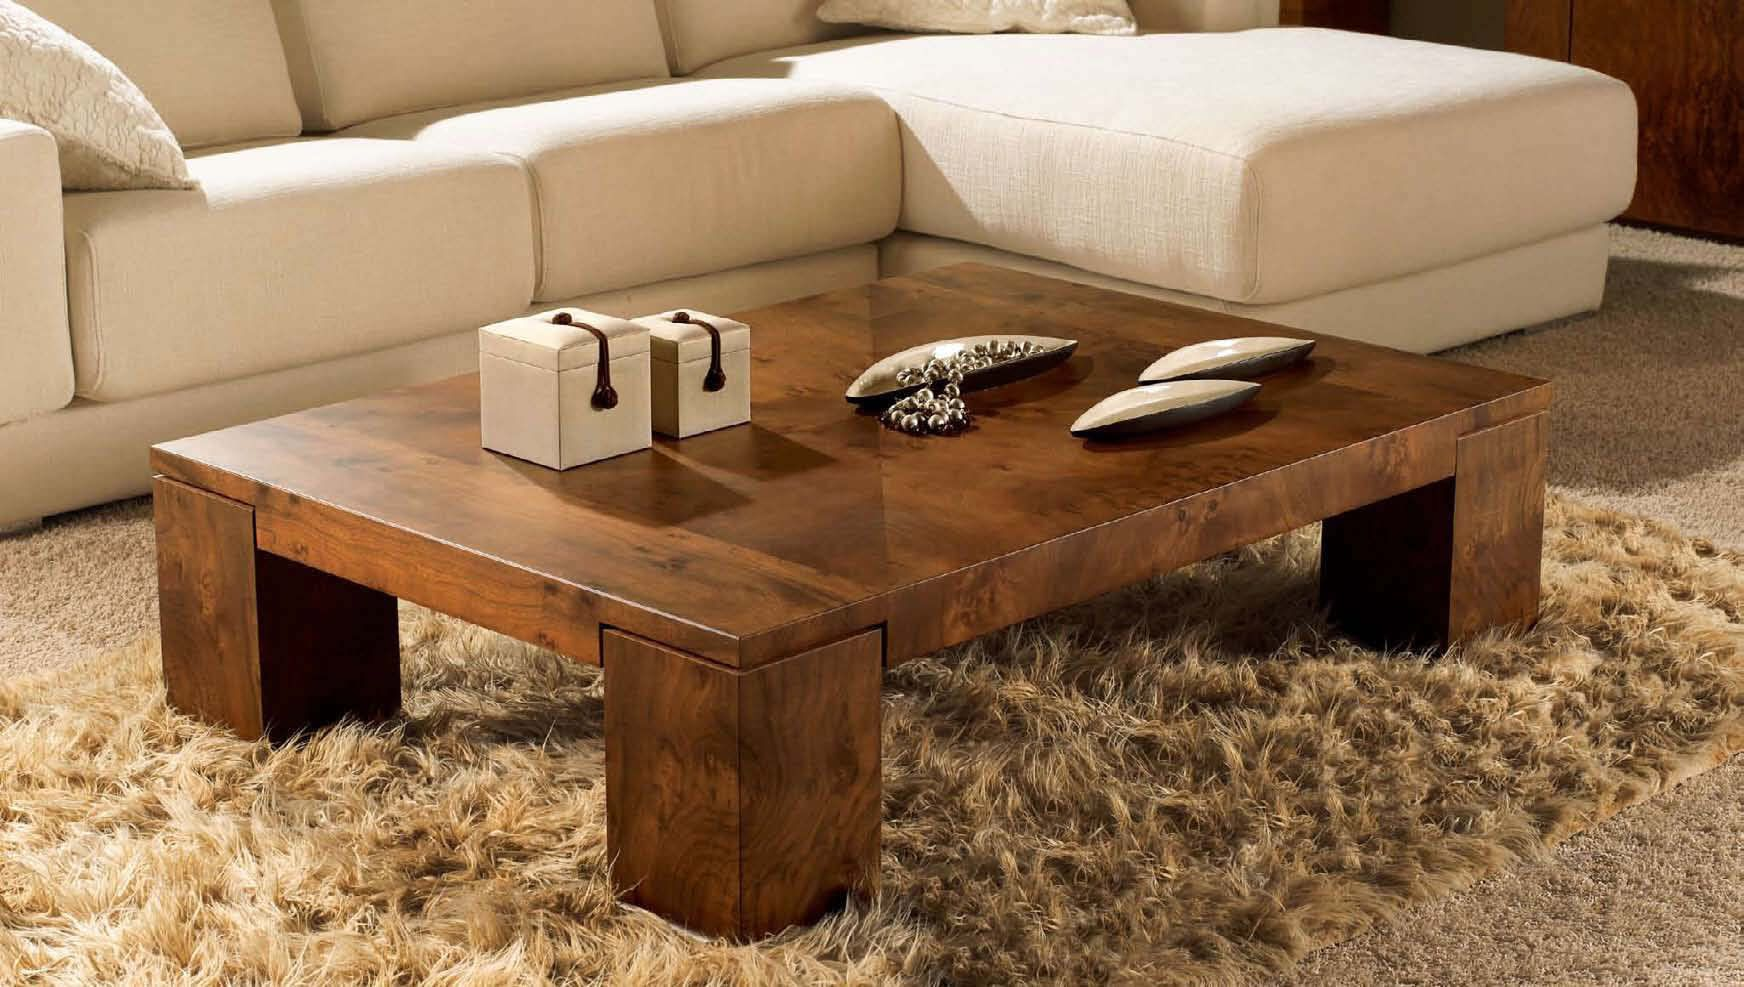 9 Wheels For Coffee Table Legs Images In 2020 Nappali